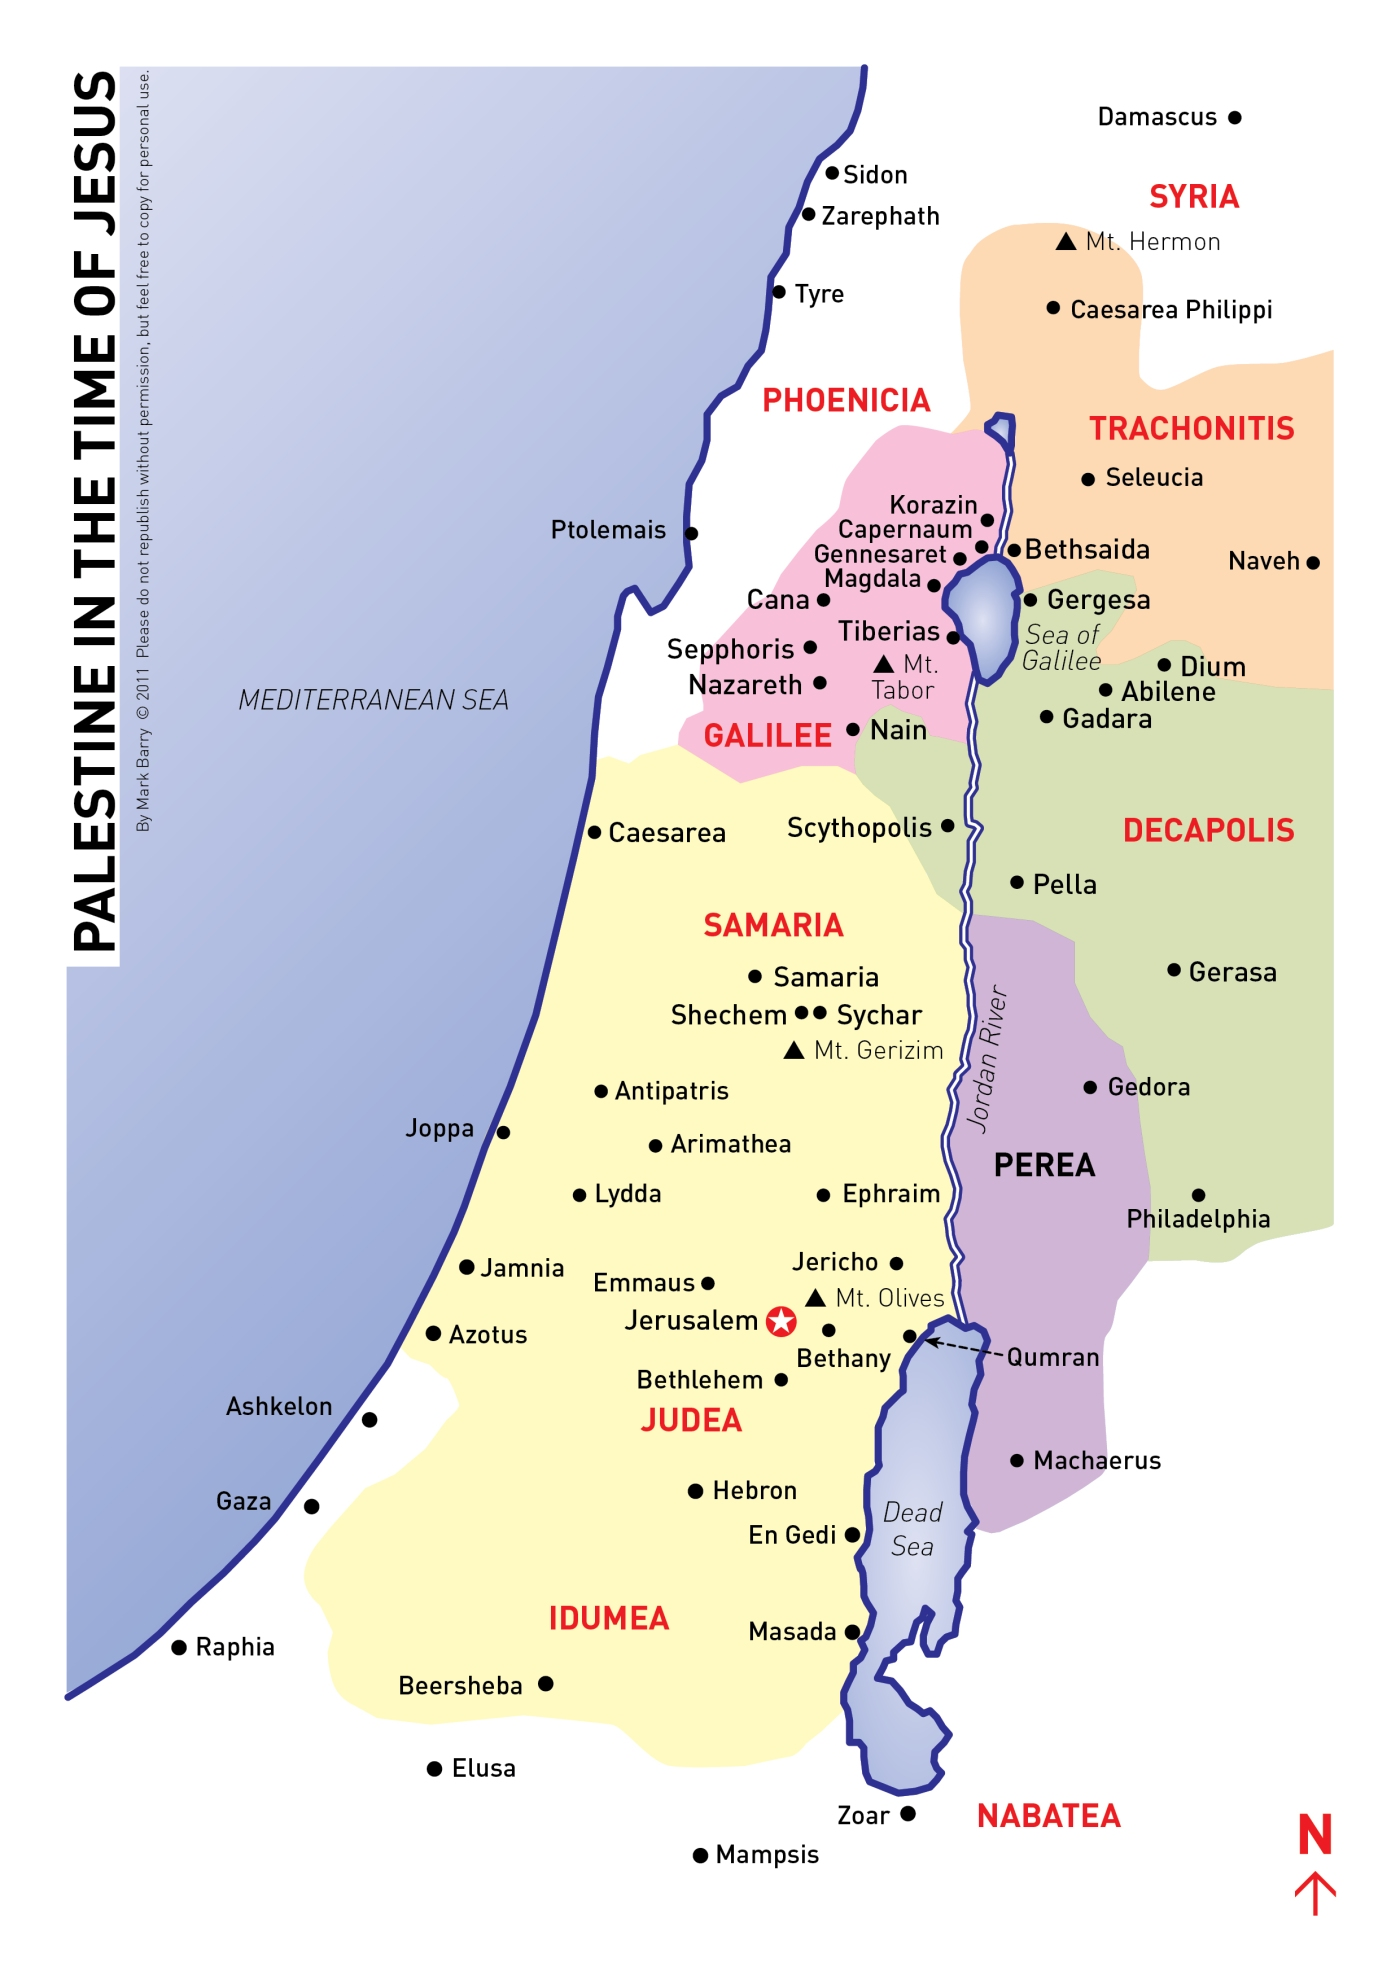 Palestine map | VISUAL UNIT on